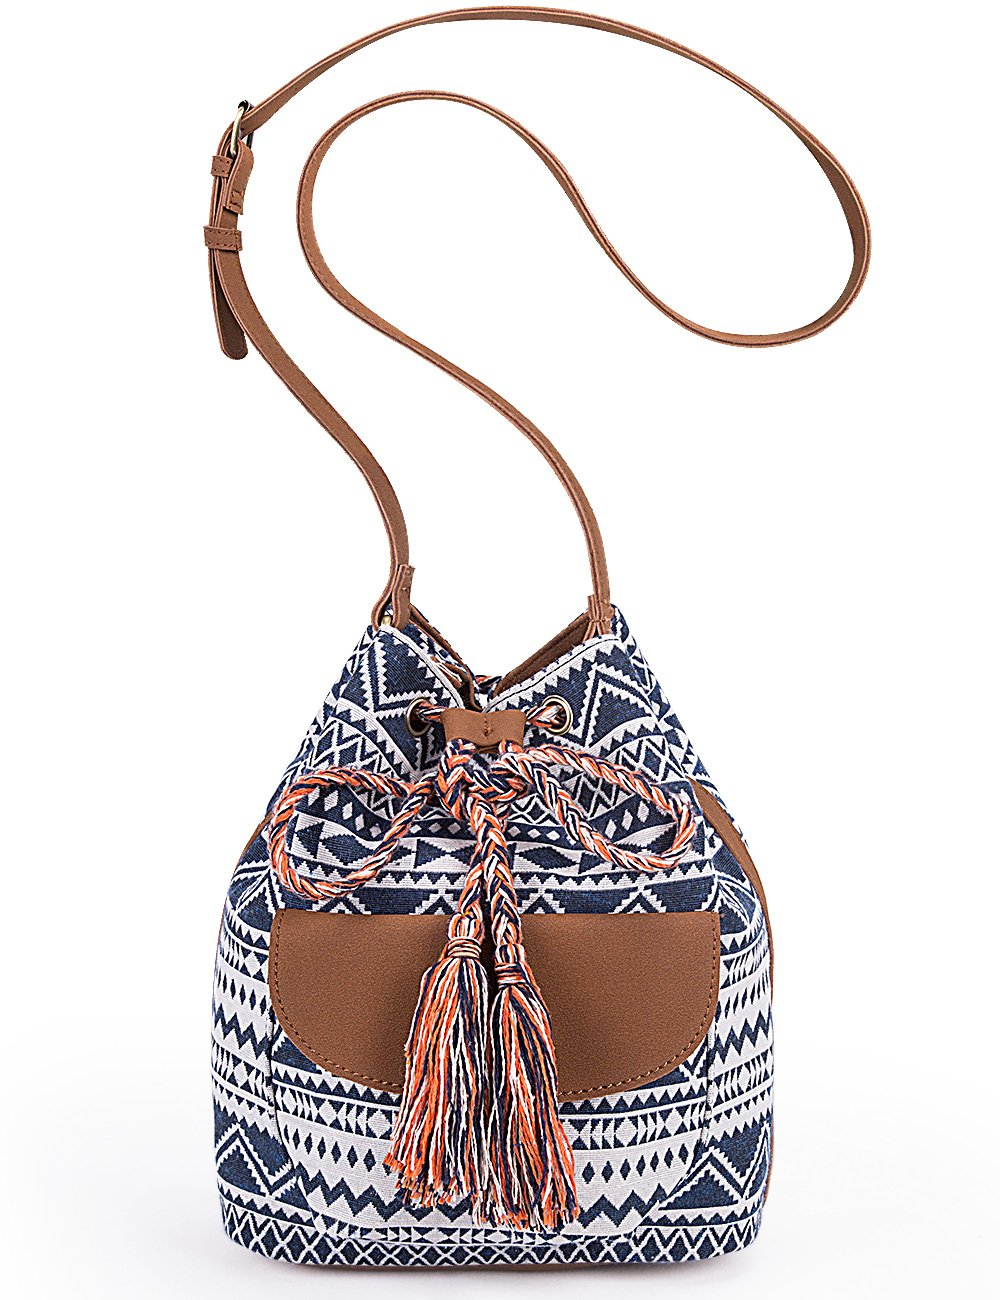 Lily Queen Drawstring Bucket Bag Small Crossbody Purse Canvas and PU (Blue)